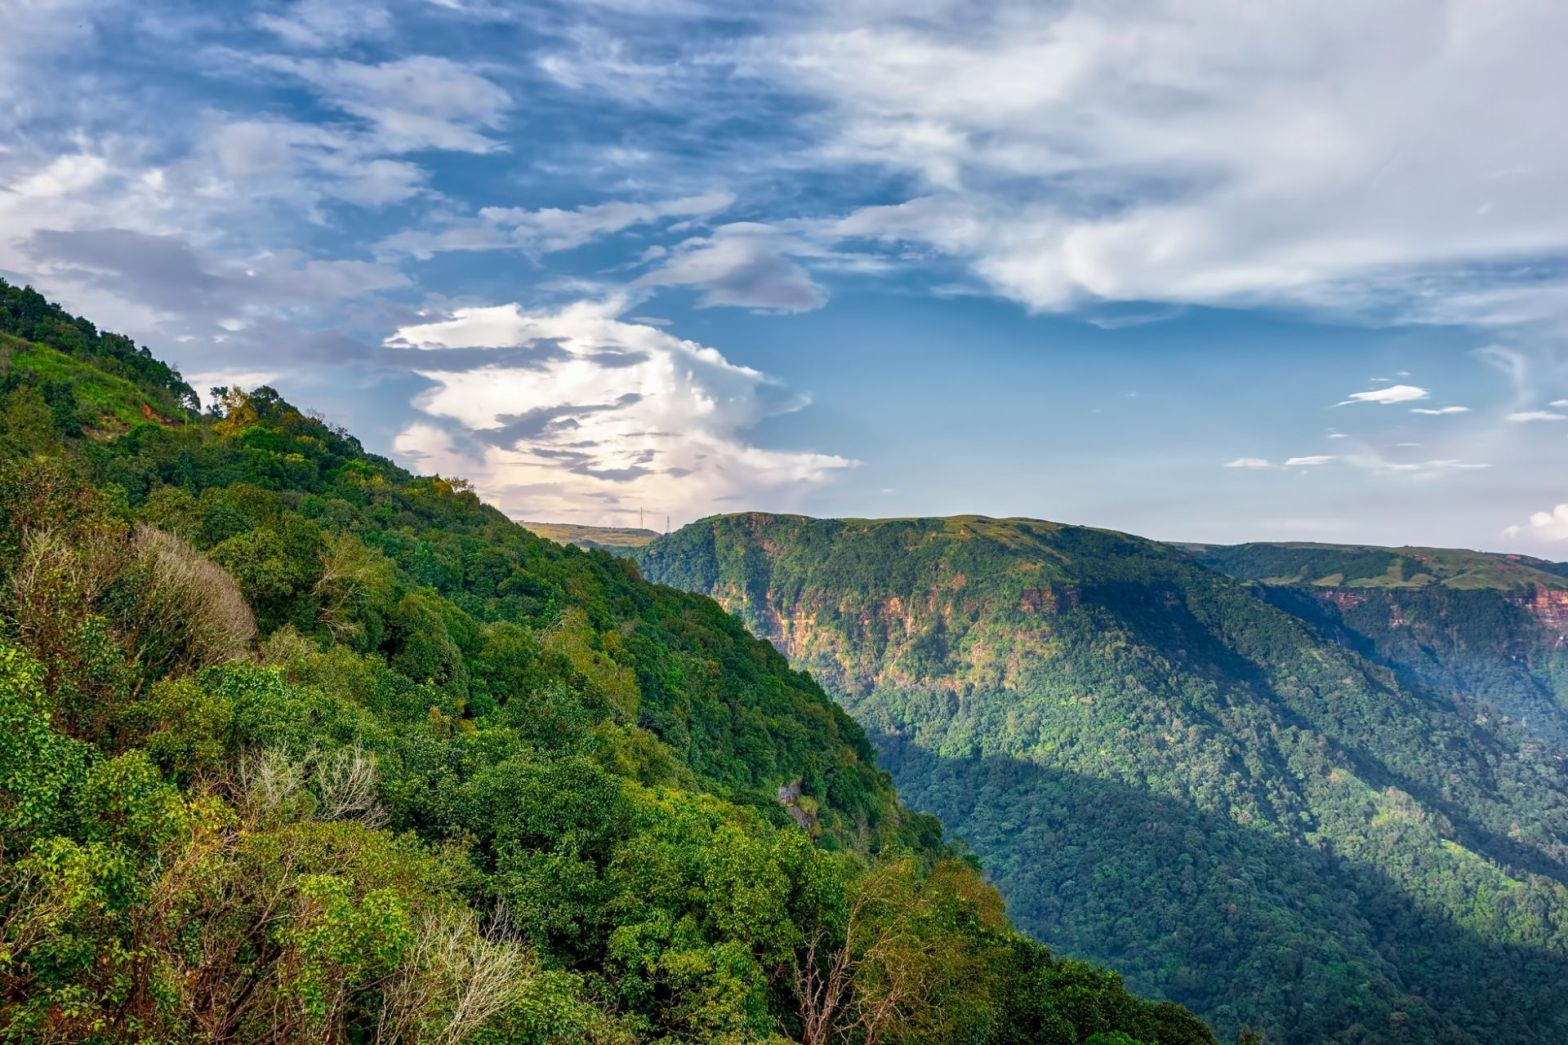 One Day Cherrapunjee Local Sightseeing Trip by Cab